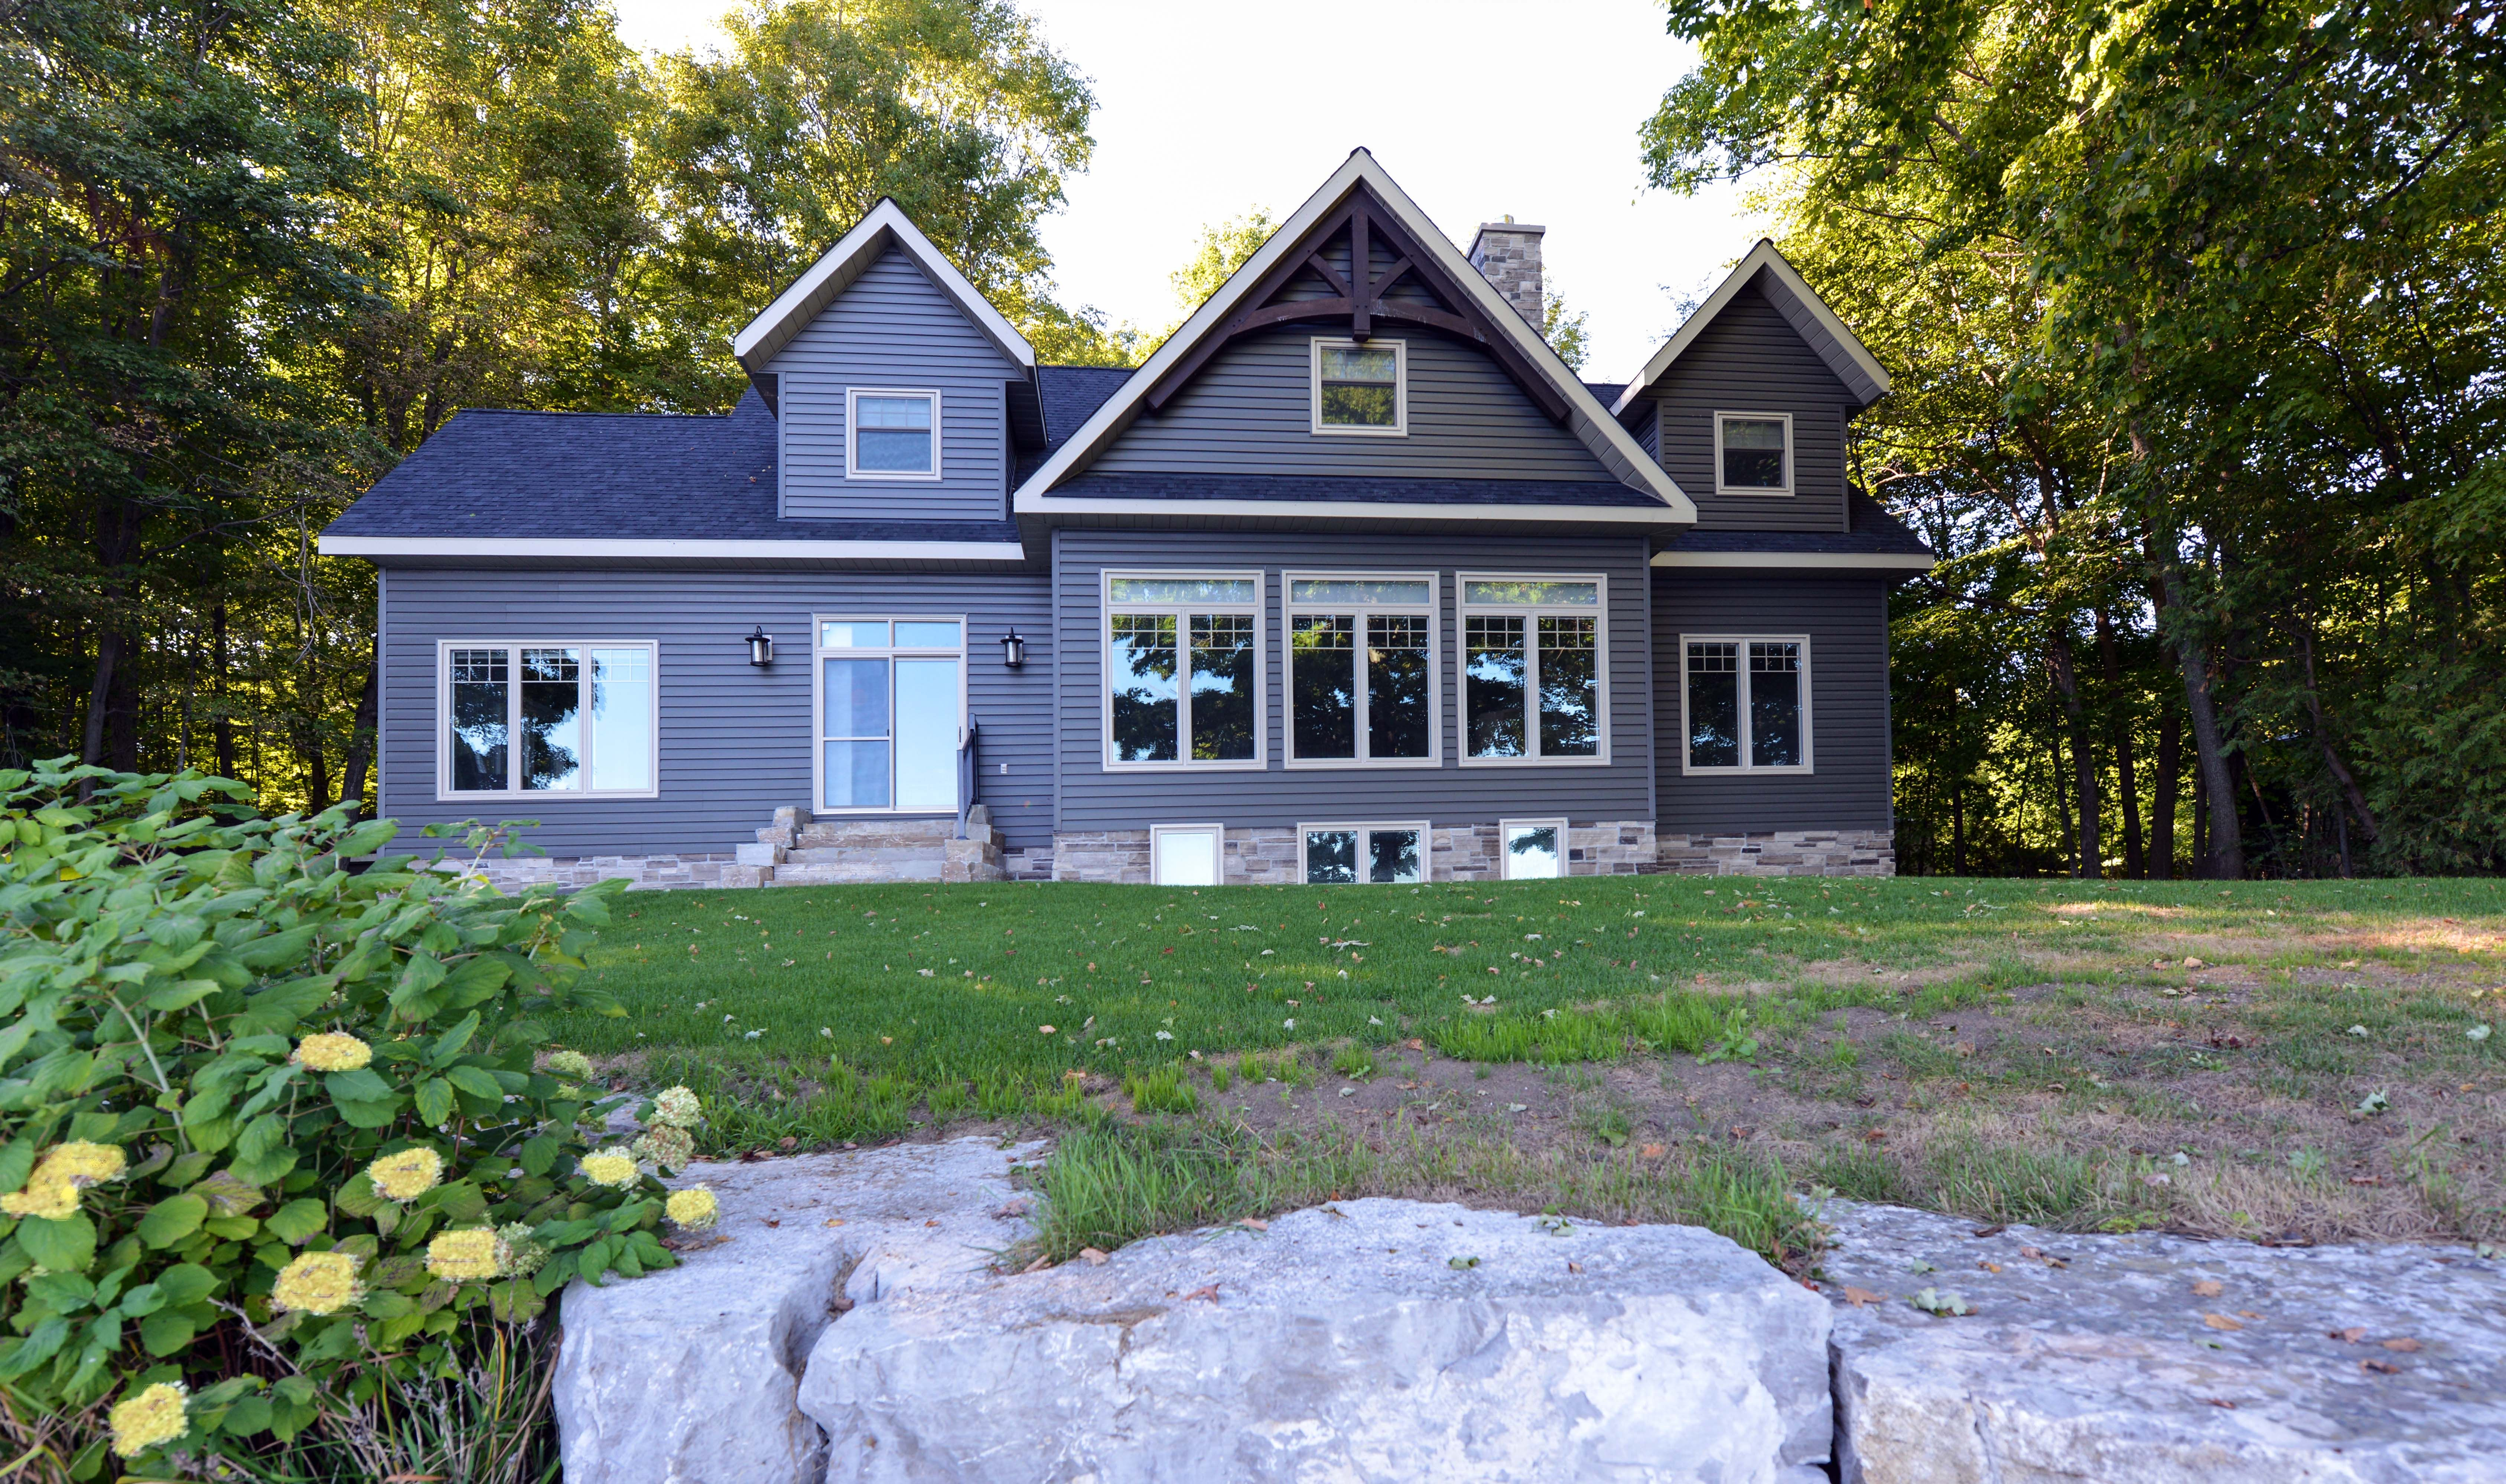 Infinity fine homes inc renovated this home in balsam lake ontario